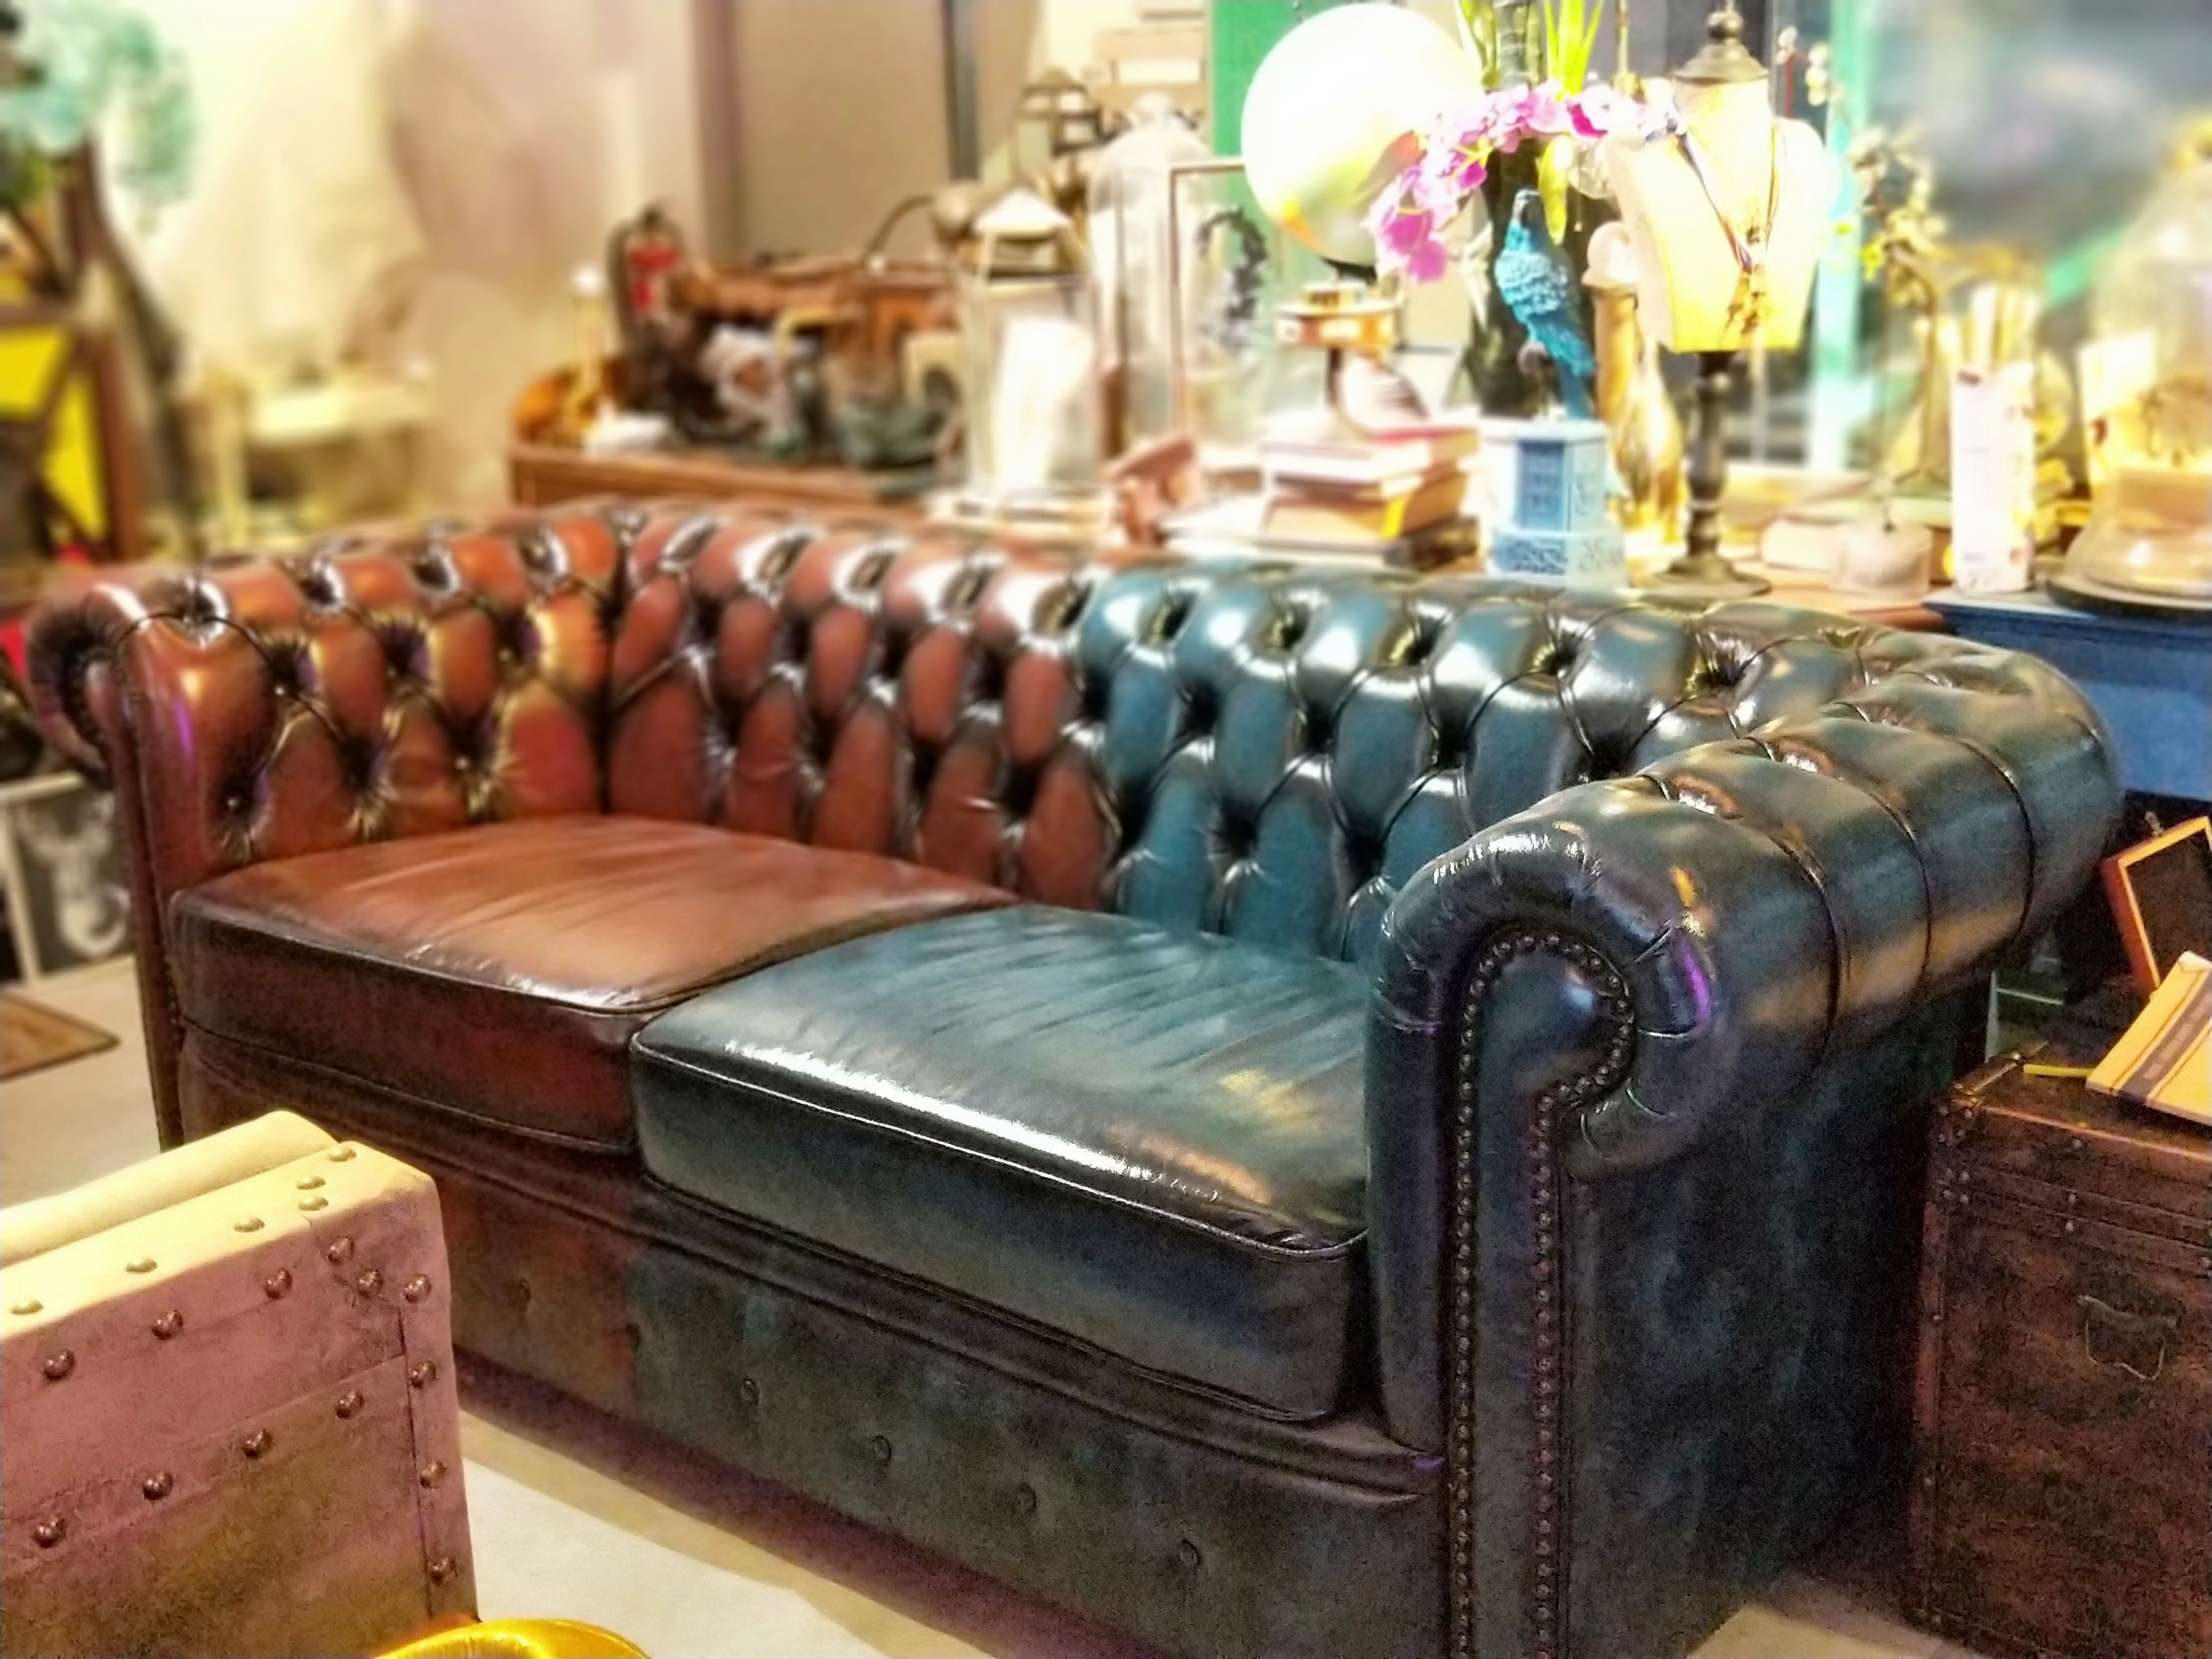 Chesterfield Leather Sofa Brown Shade Vintage Leather Sofa Leather Sofa Leather Chesterfield Sofa